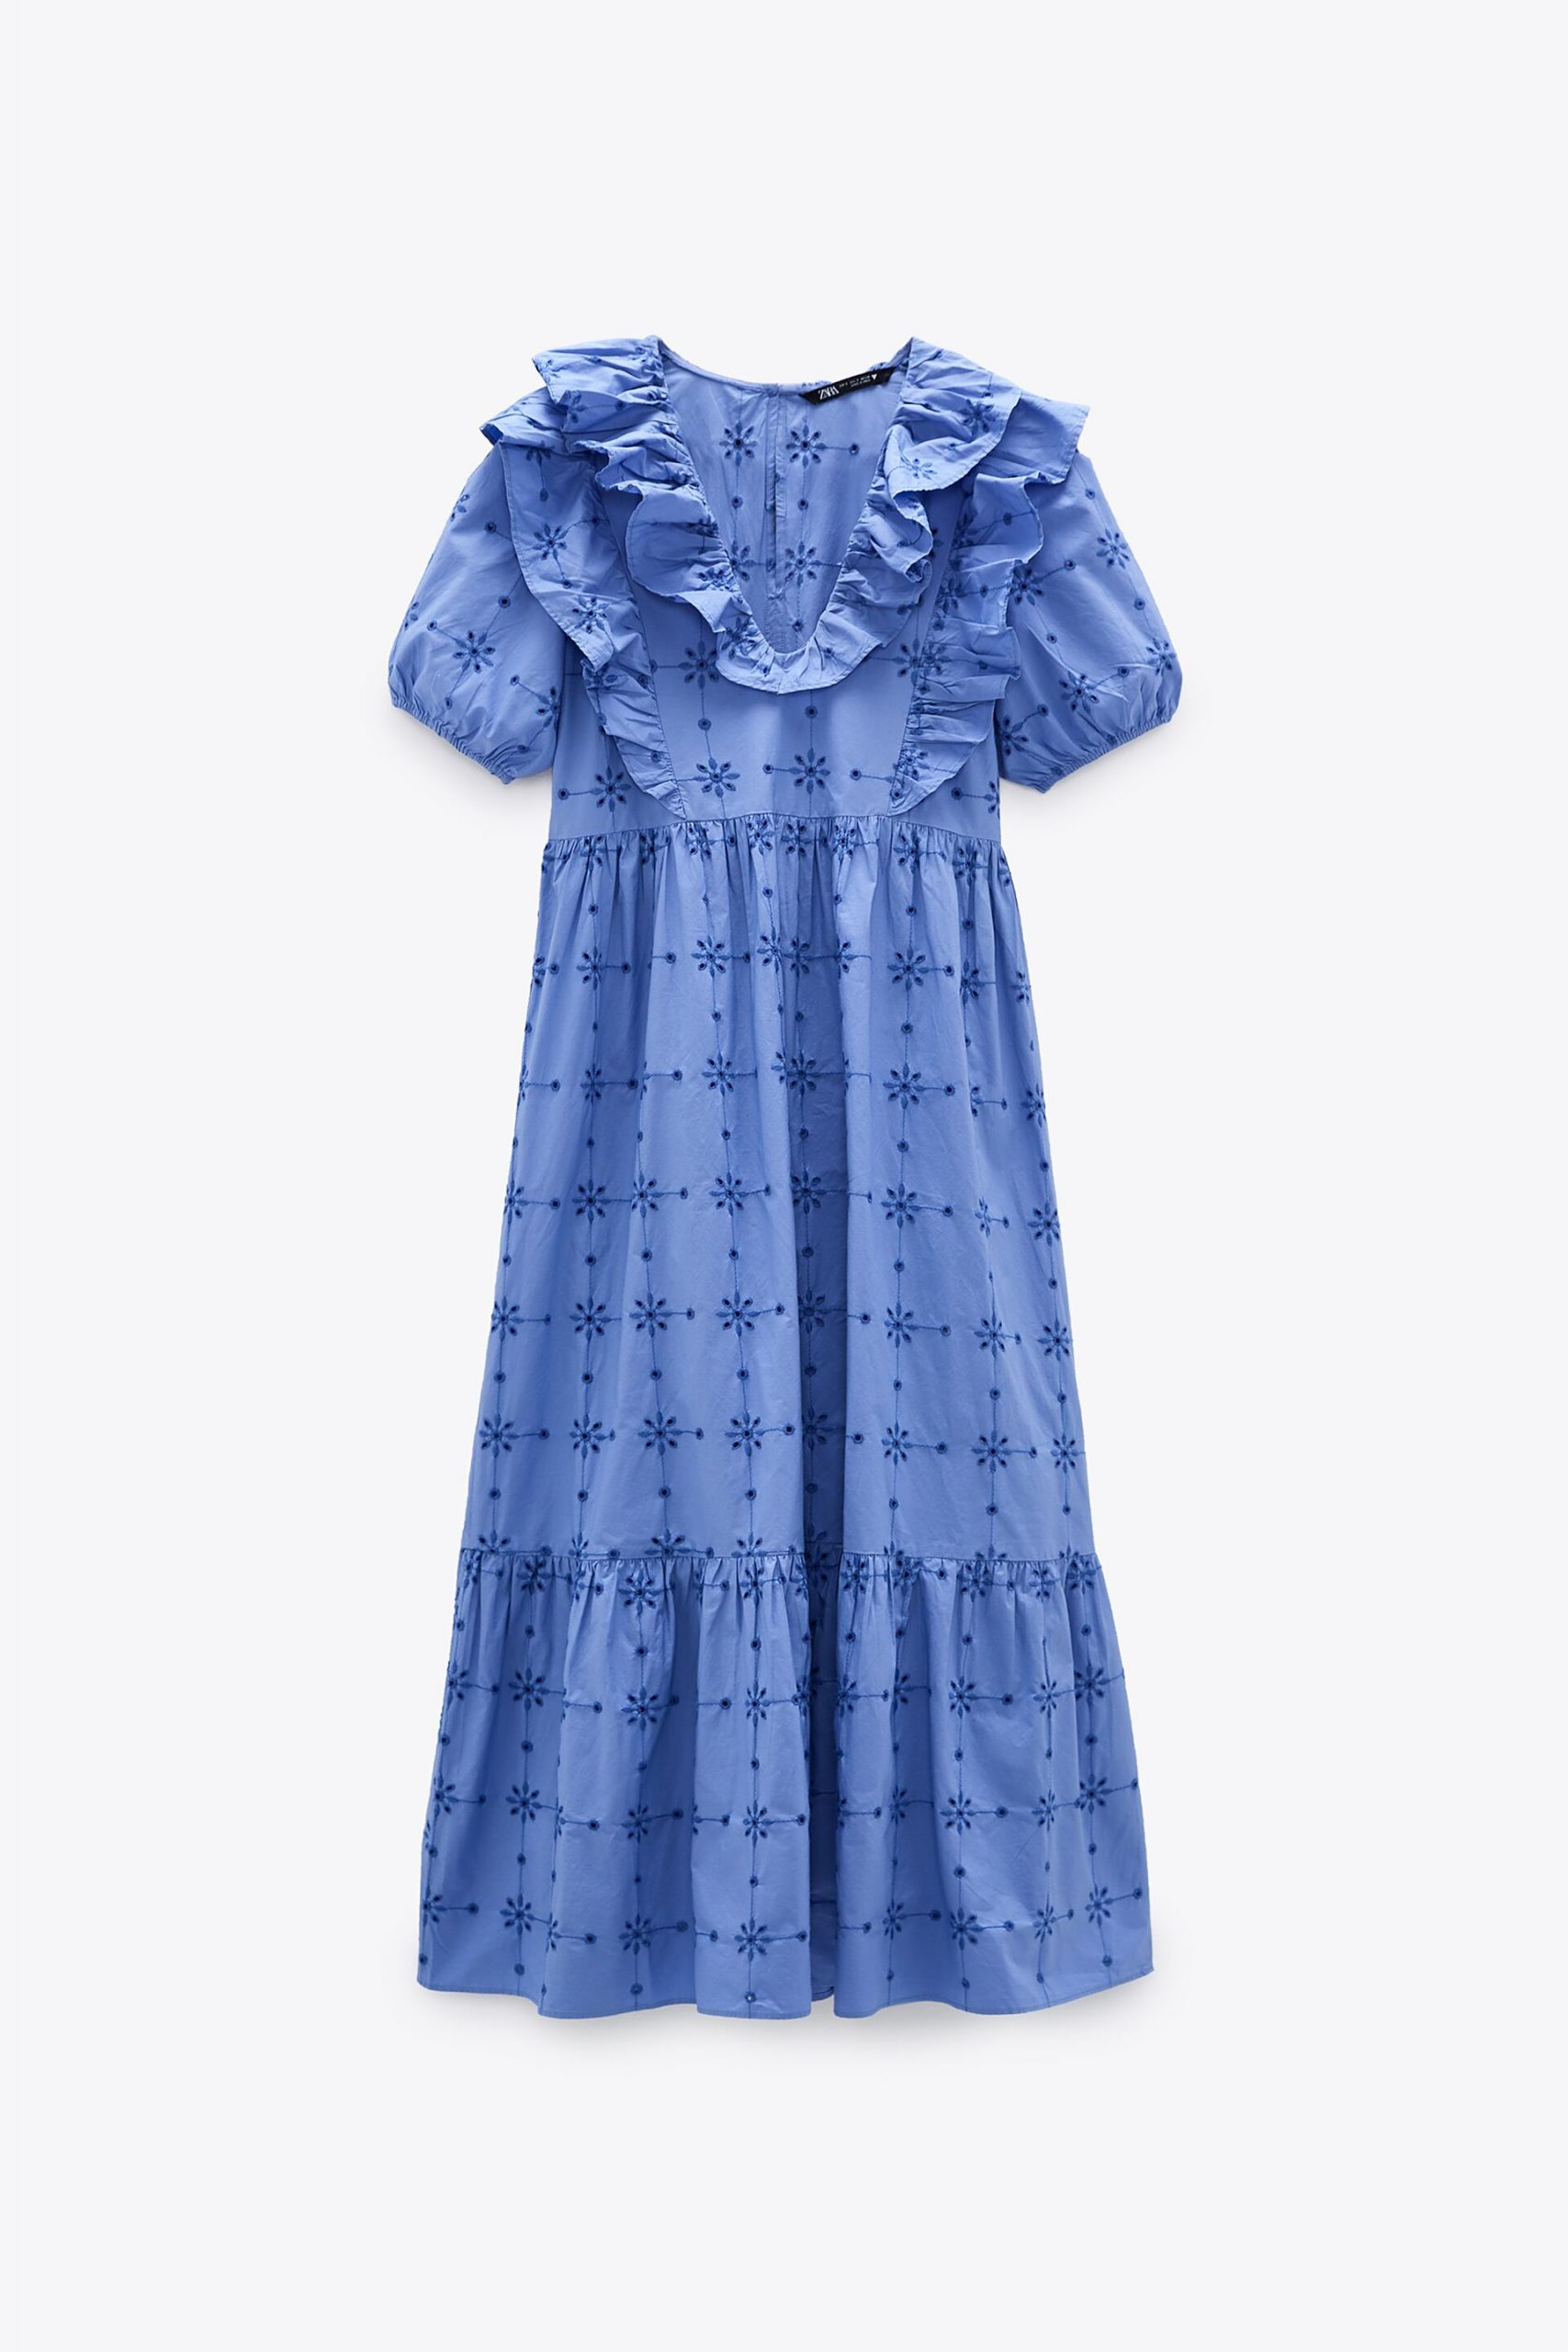 Full-length blue dress with ruffled sleeves and blue floral embroidery